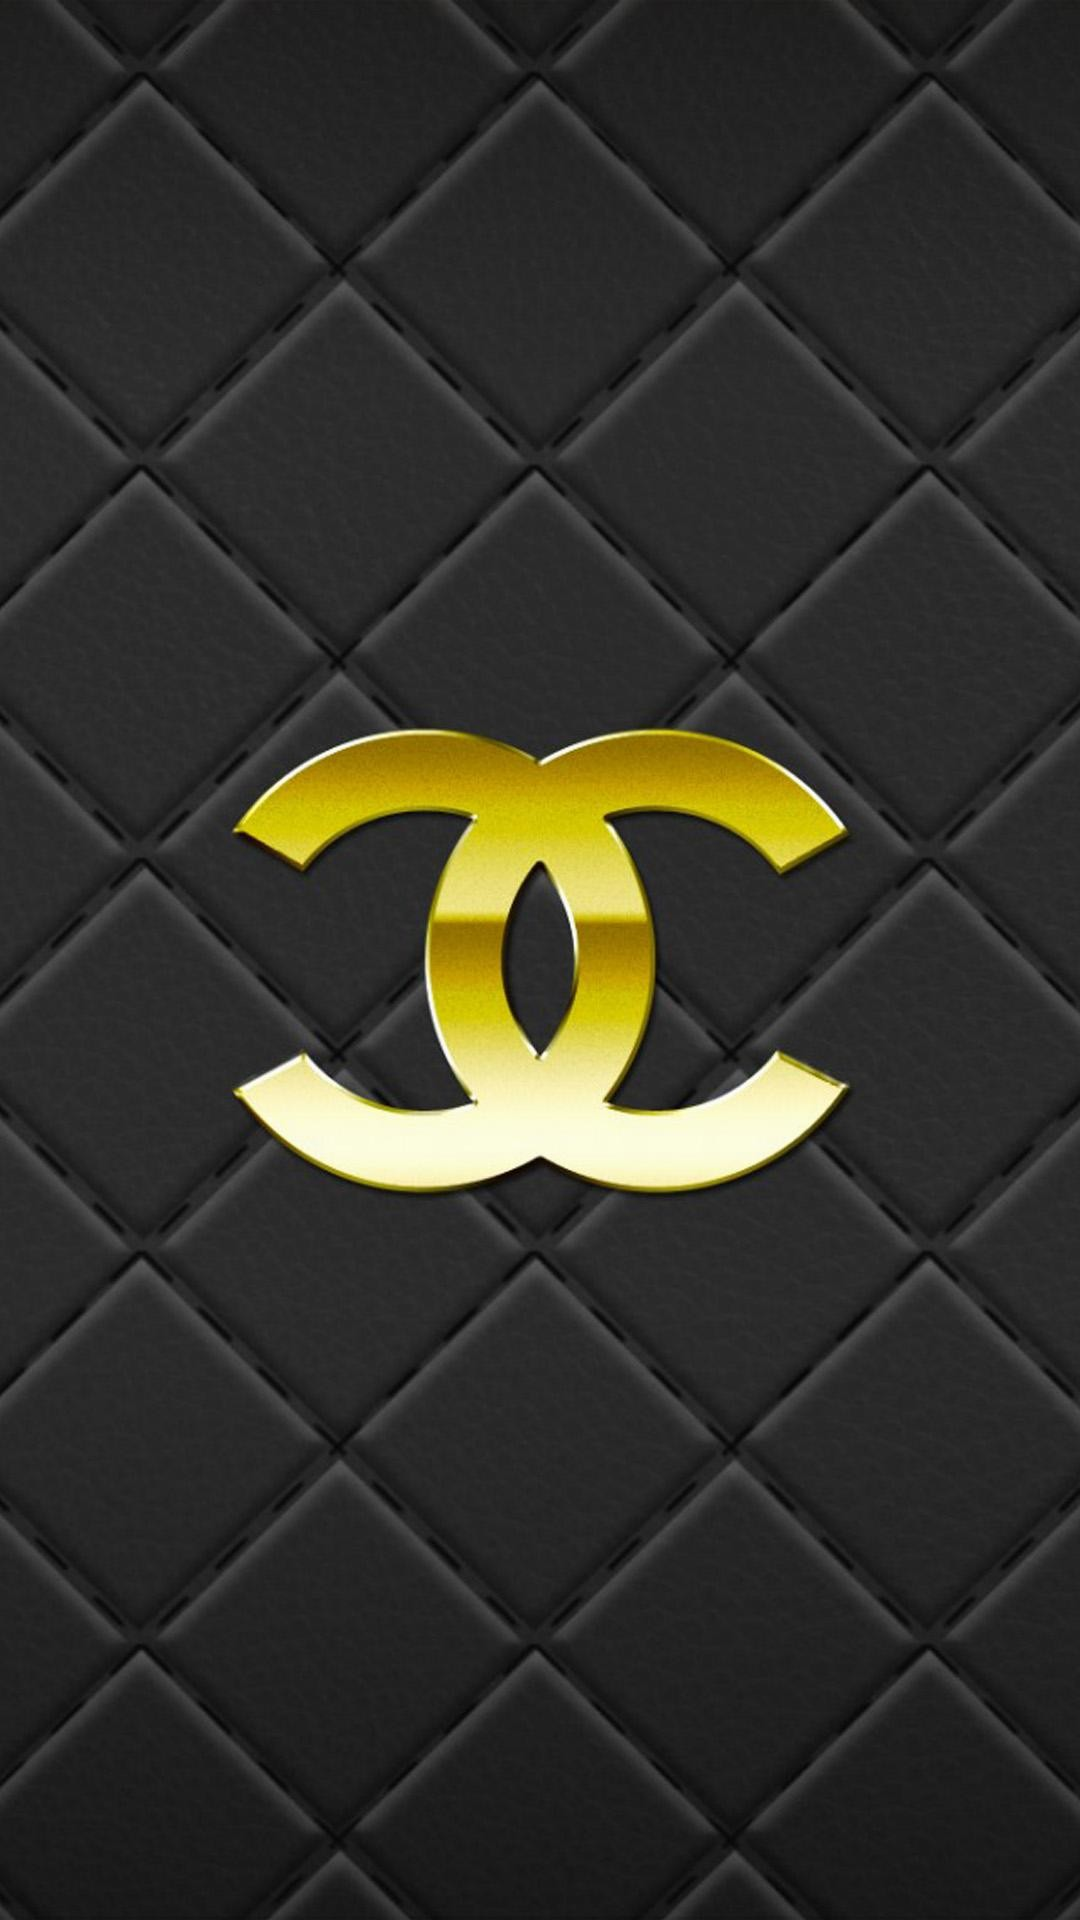 wallpaper.wiki-Chanel-iPhone-Wallpapers-HD-PIC-WPC007212